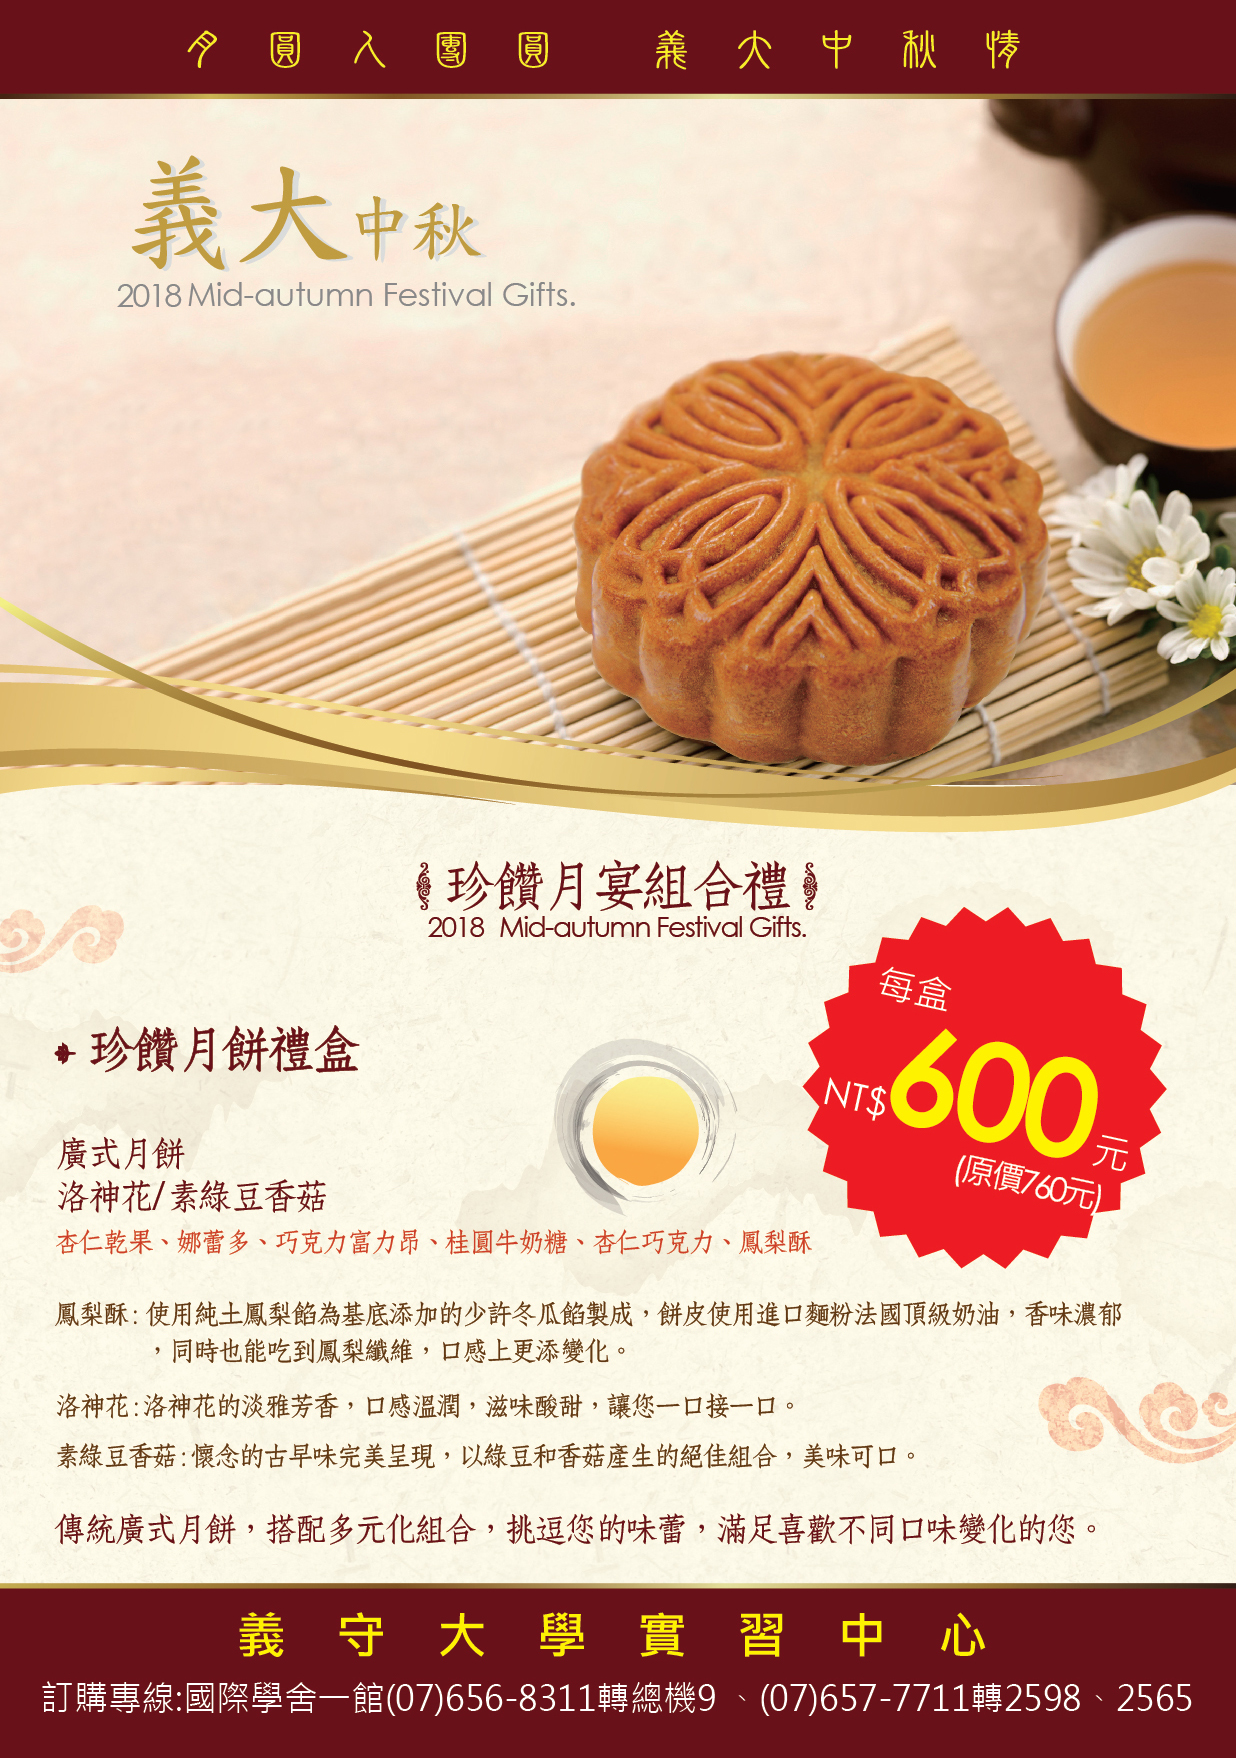 【Mid-autumn-Festival Gifts】